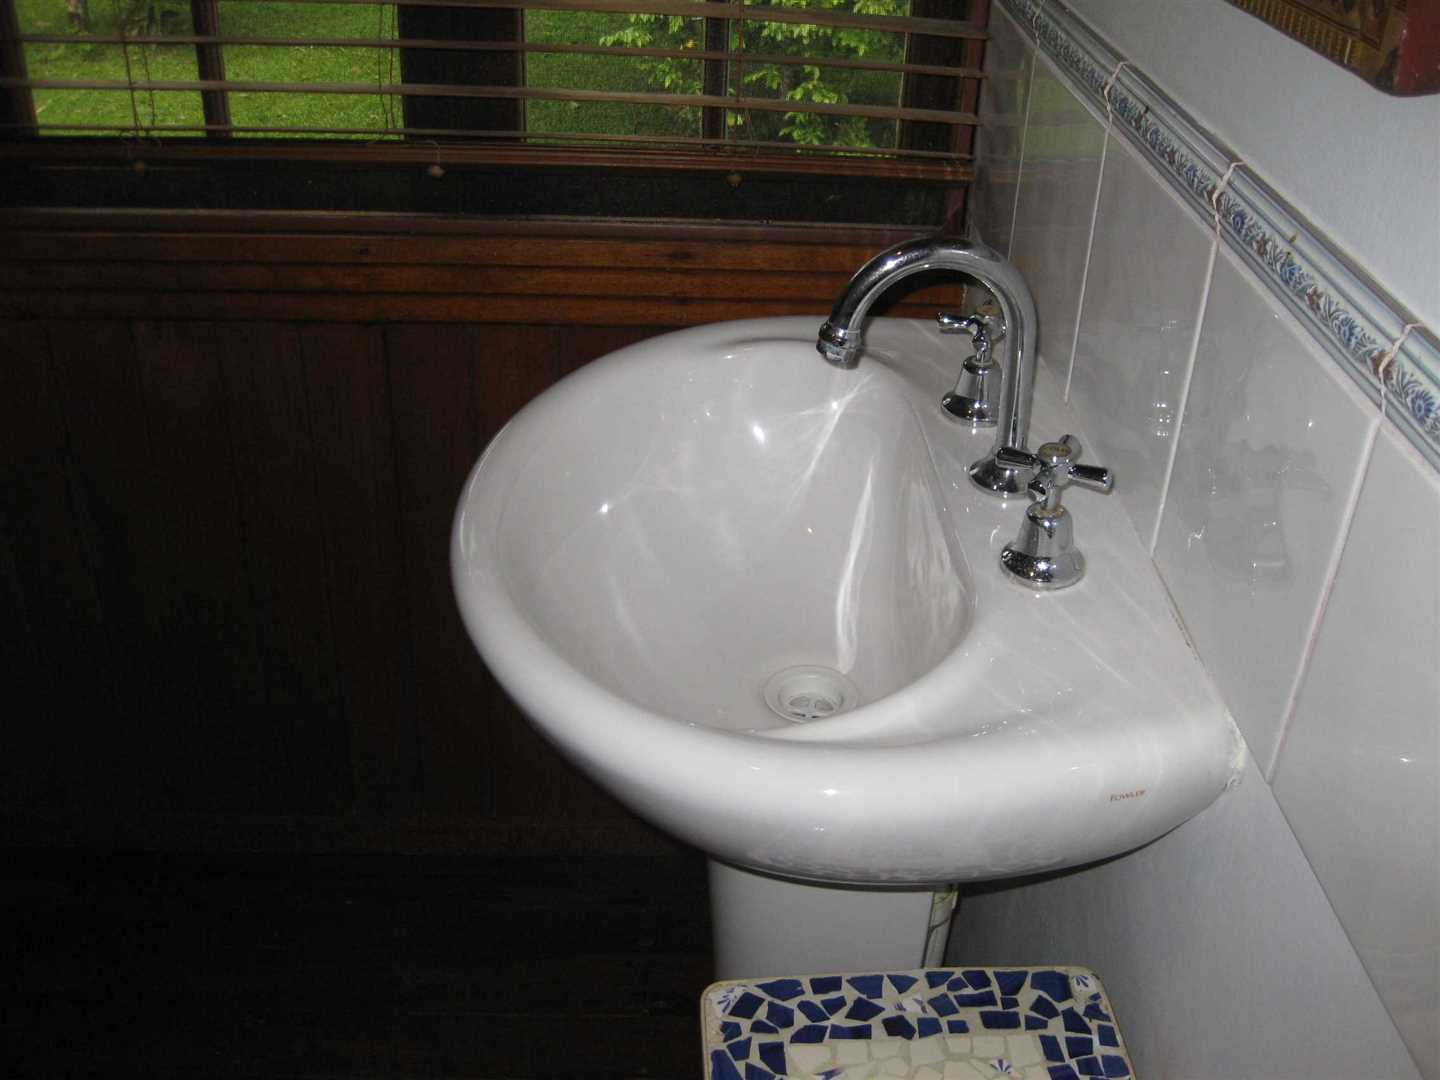 Inside view of part of home showing part of the bathroom, photo 2